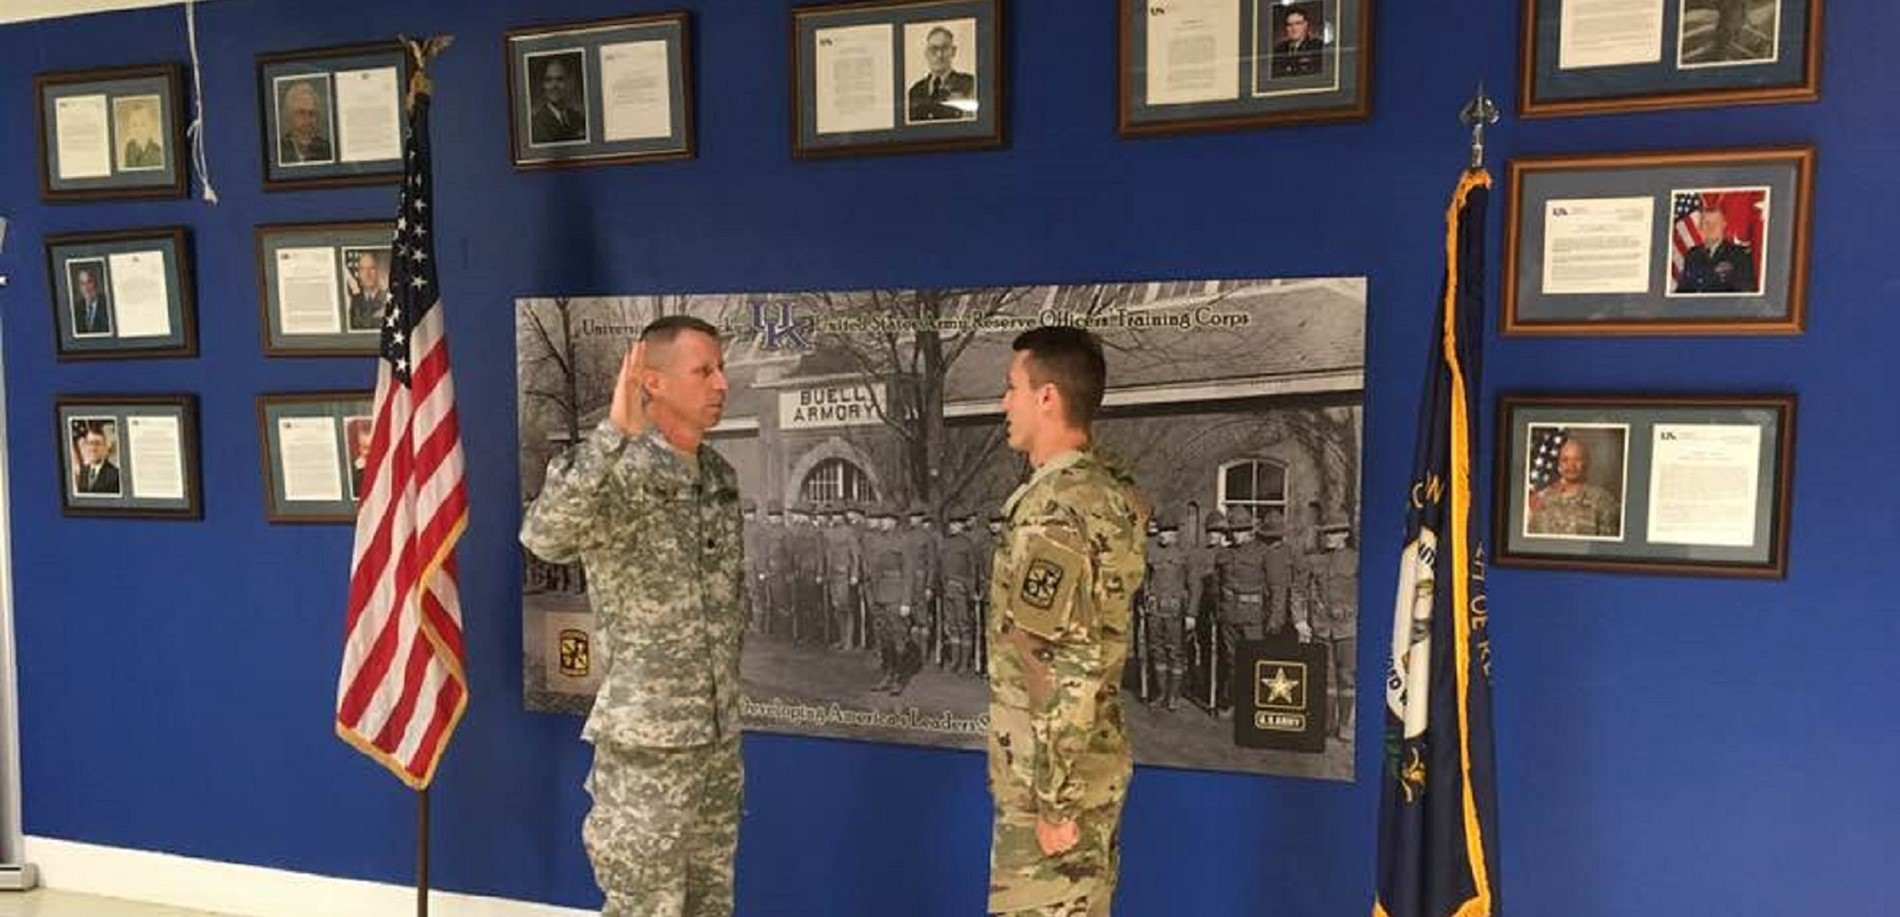 Colonel Fowler is honored to swear in his son Keith, former NHHS student, into the ARMY  ROTC program.